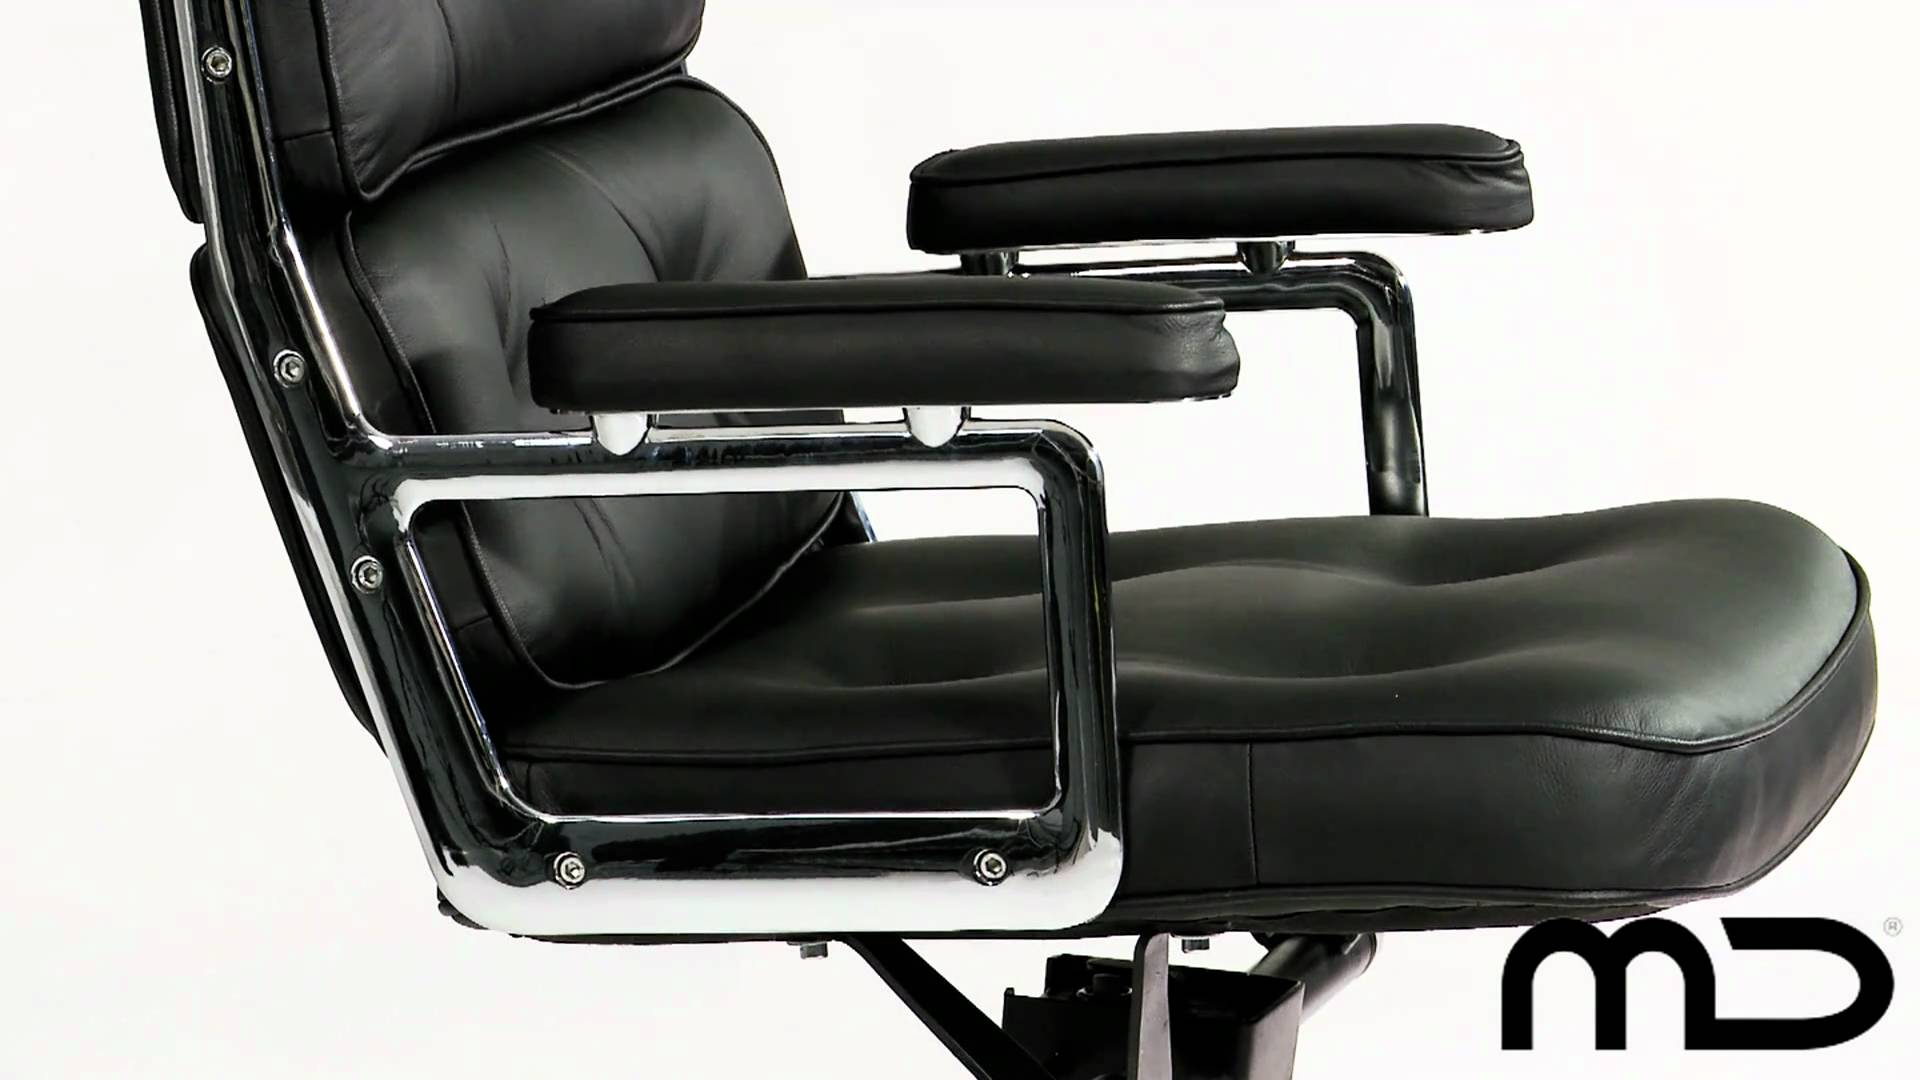 Eames Office Replica Executive Chair